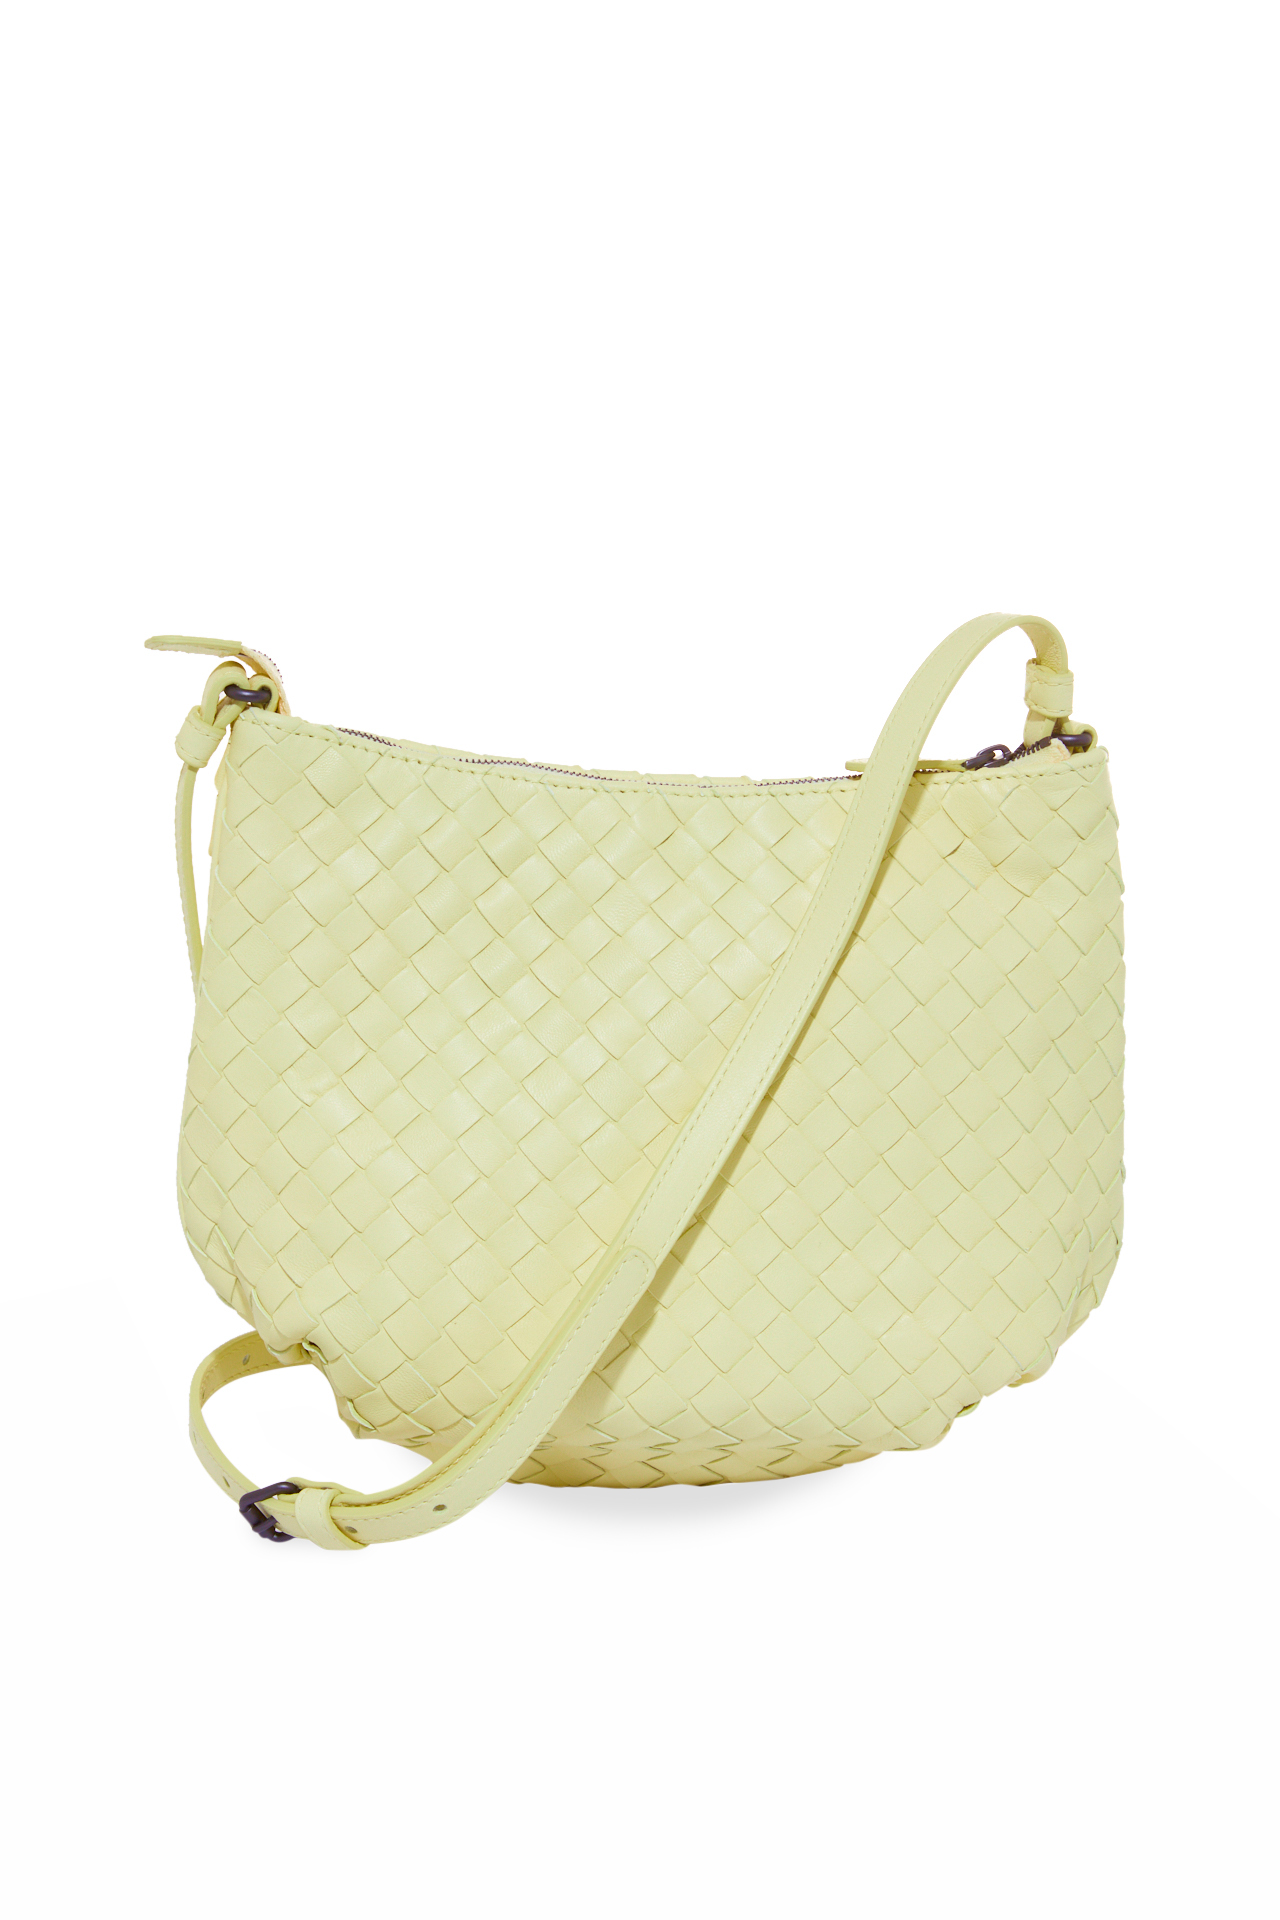 Bottega Veneta Textured handbag La Vallée Village